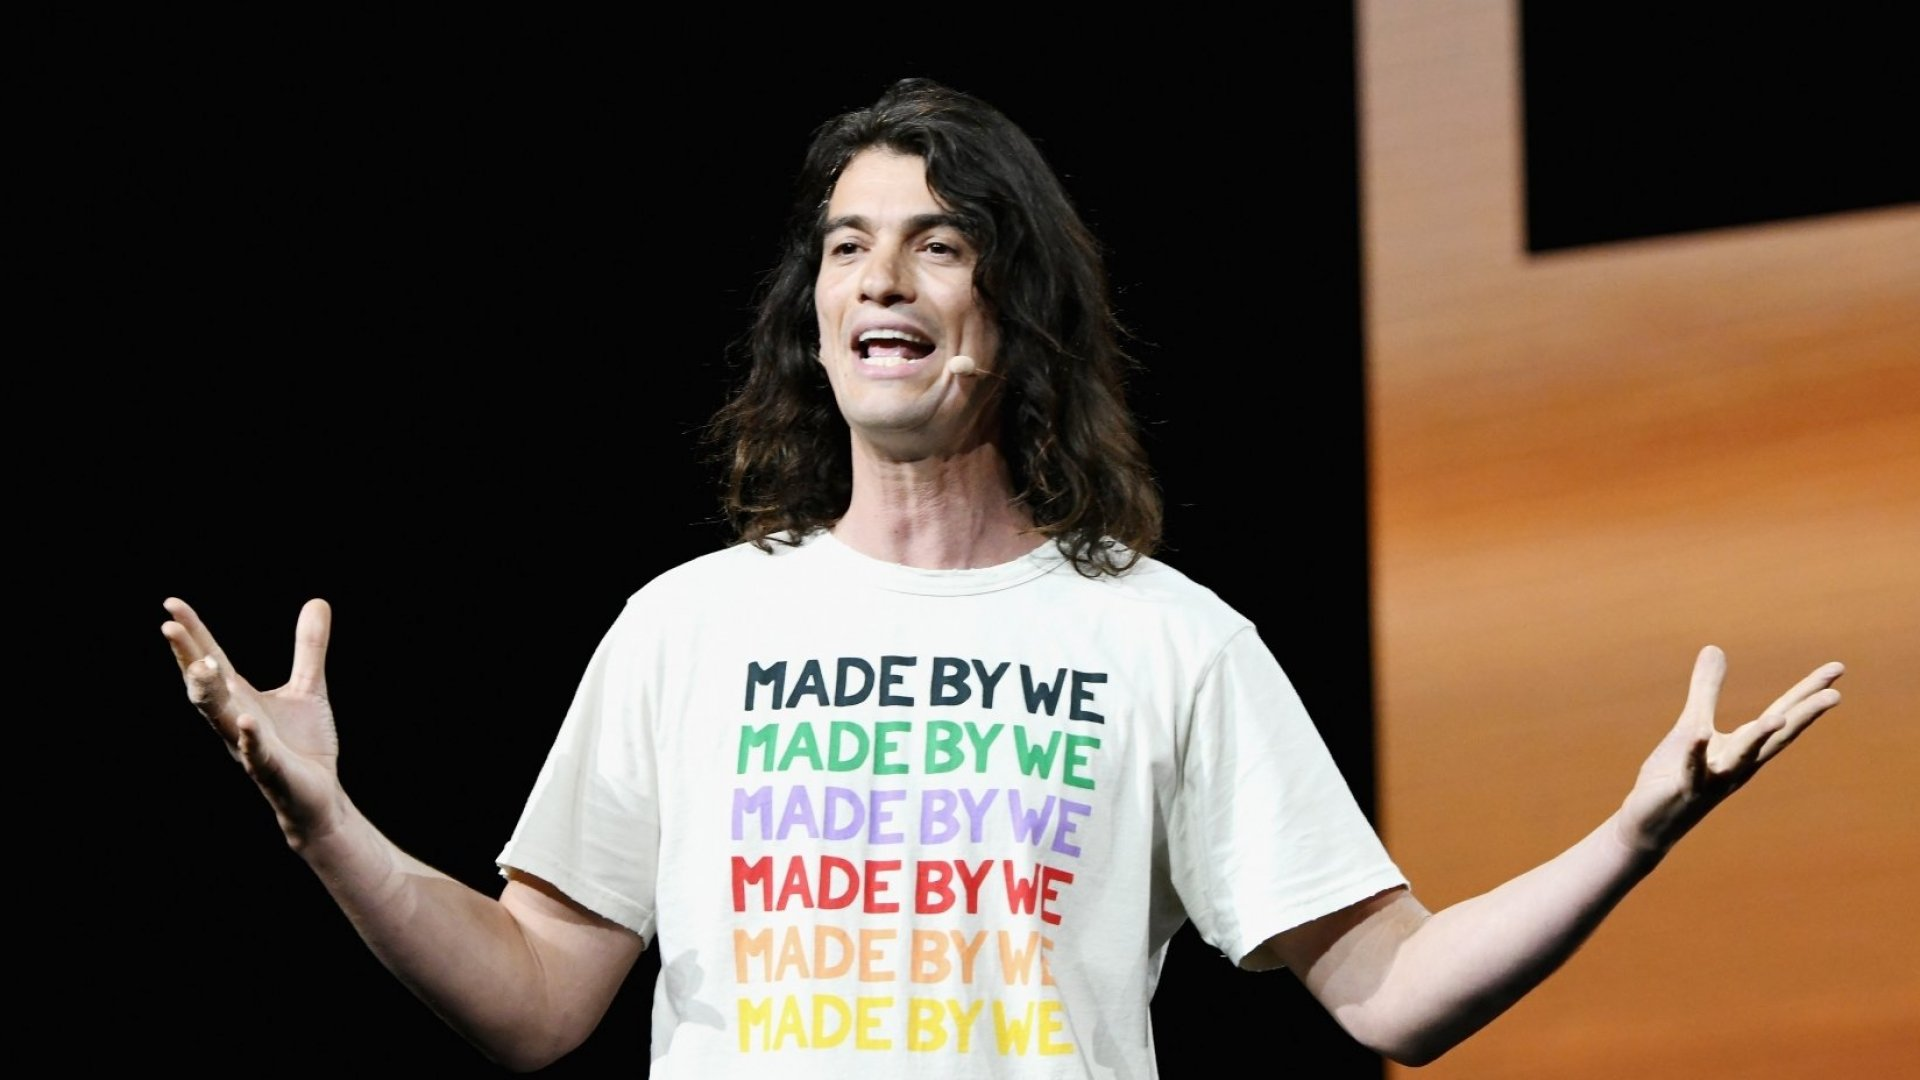 We Company CEO Adam Neumann May Seem Successful, but Don't Copy His Leadership Style